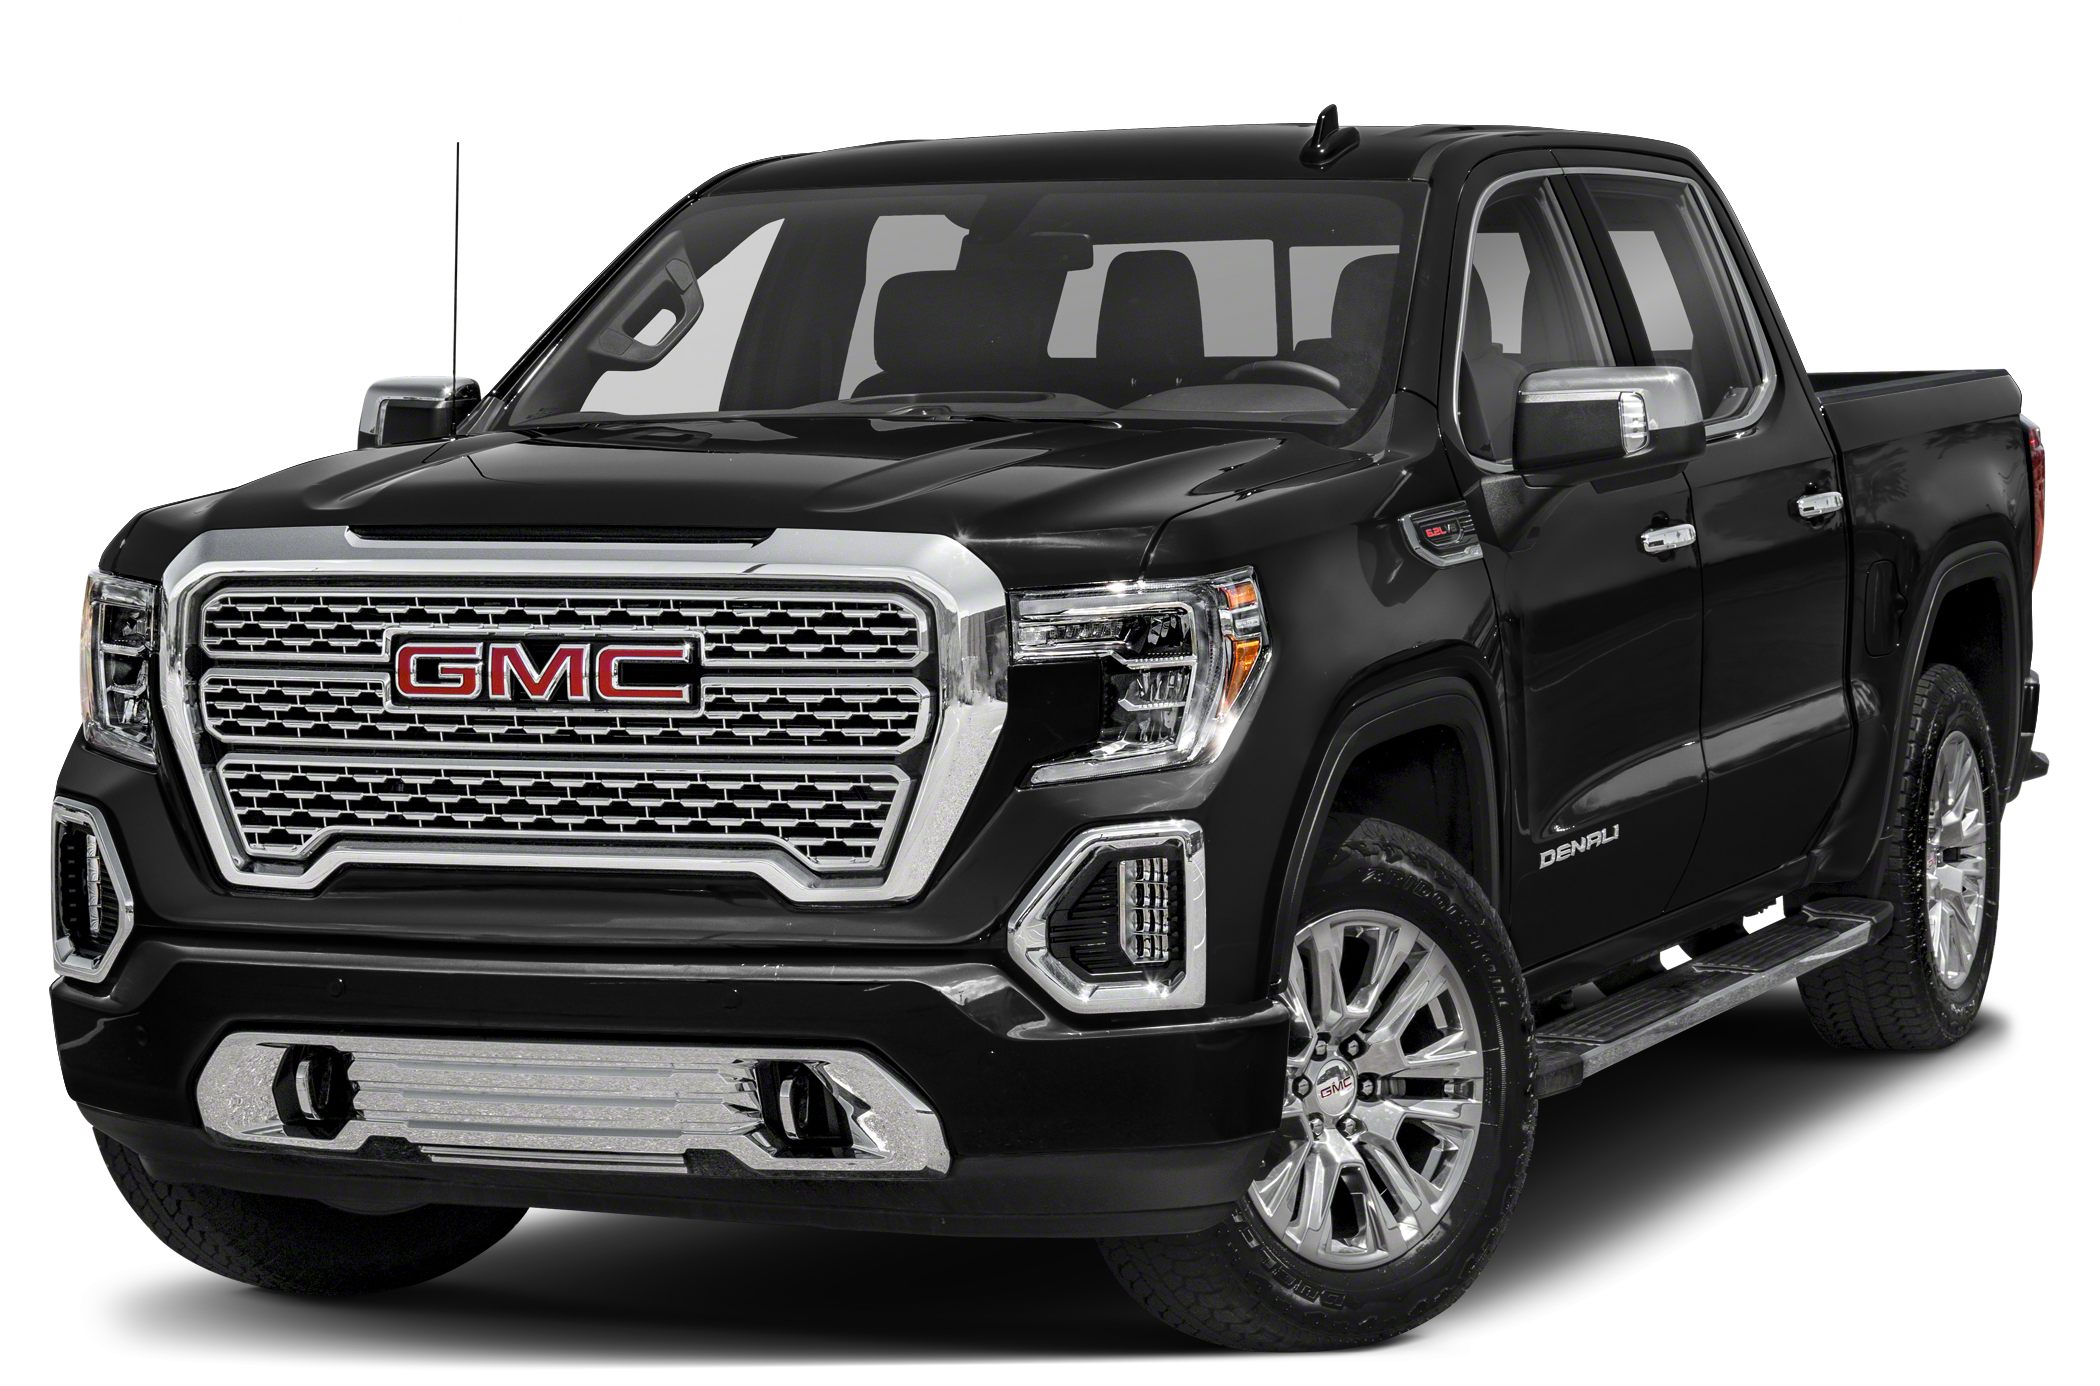 2020 Gmc Sierra 1500 Denali 4x4 Crew Cab 5 75 Ft Box 147 4 In Wb Specs And Prices